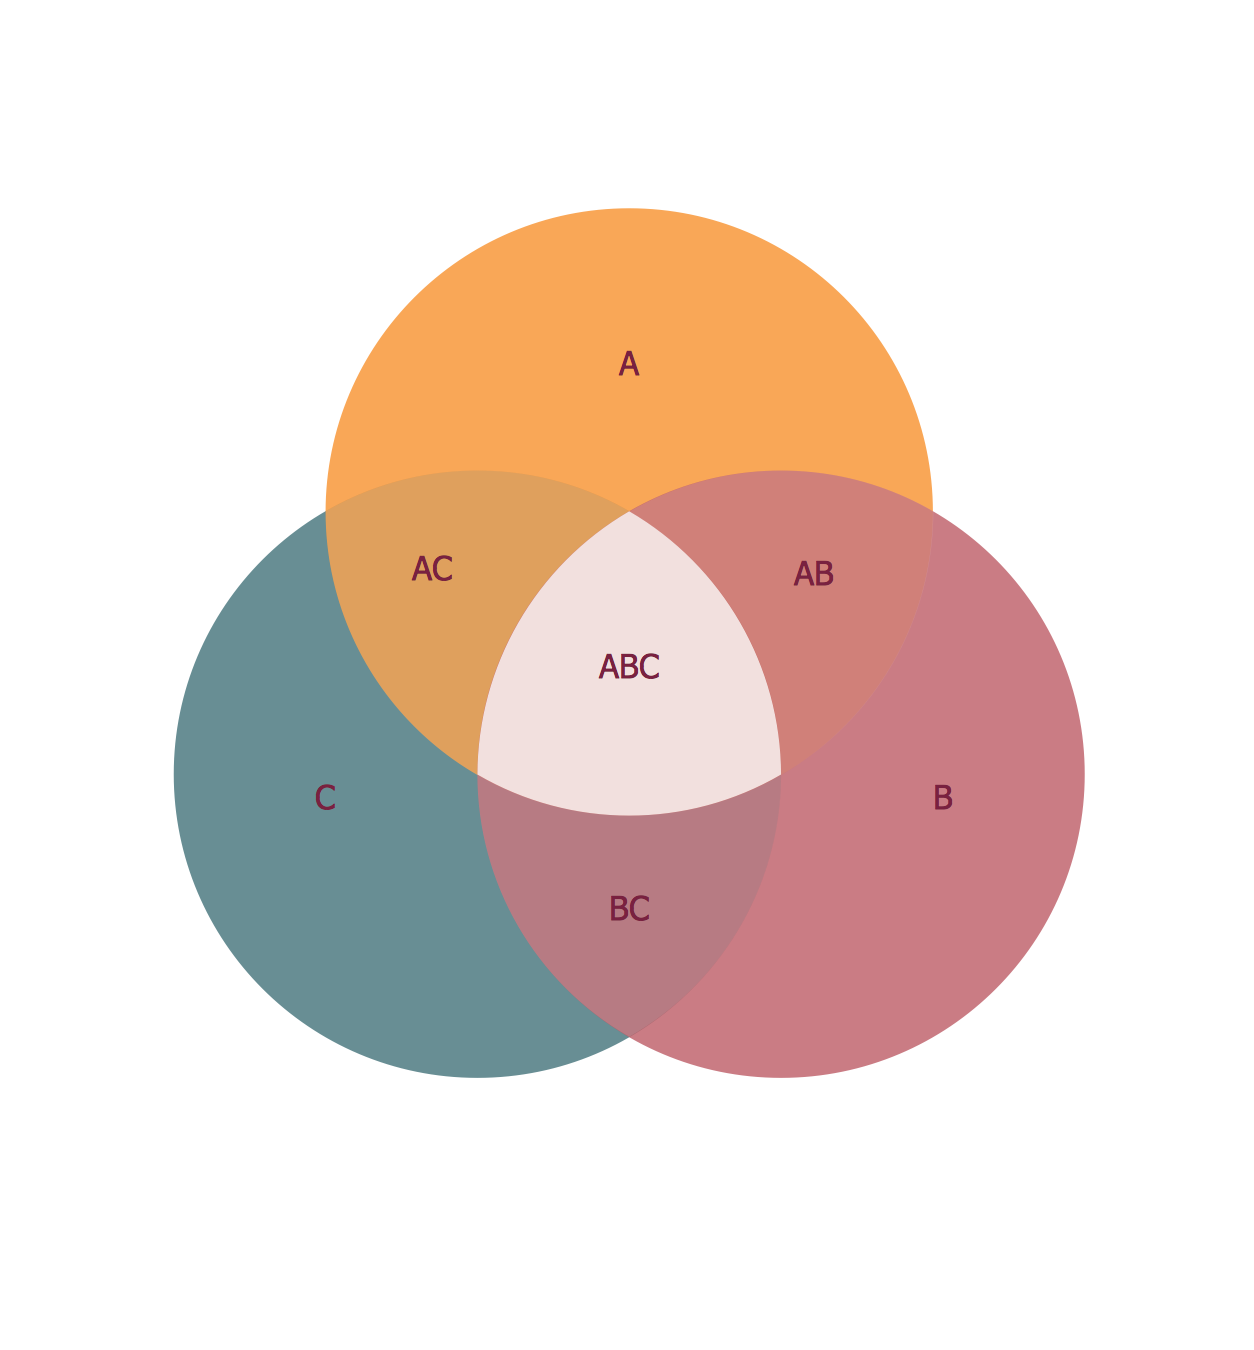 venn diagram template    circle venn diagram  venn diagram    venn diagram example   circle venn